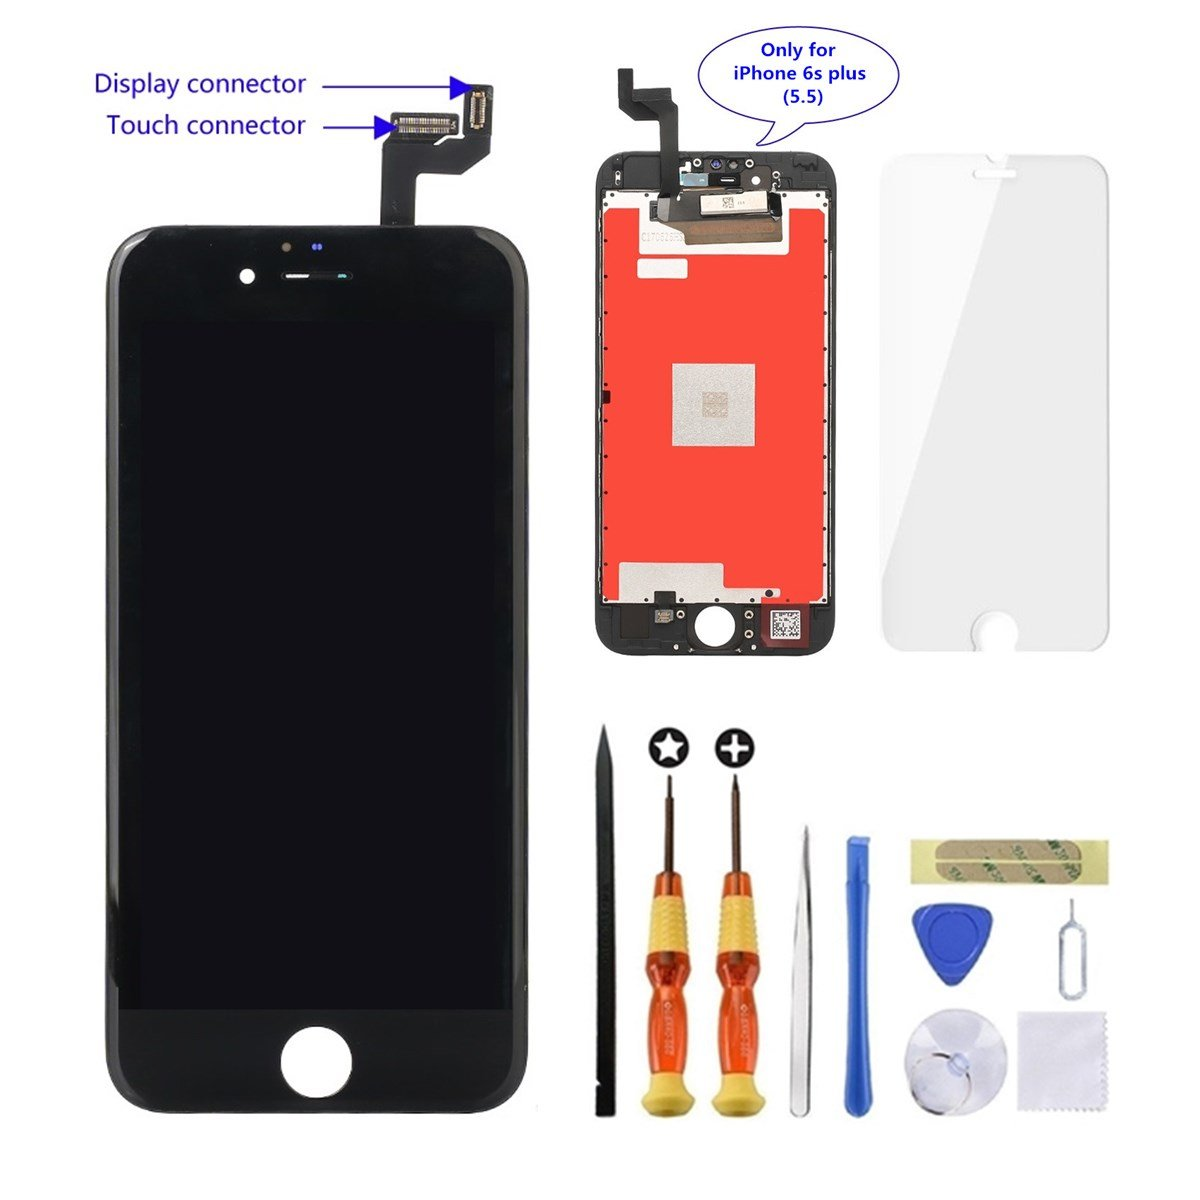 sale retailer a1e1d 30885 GULEEK iPhone 6s Plus Screen Replacement 5.5 inch LCD Display 3D Touch  Screen Digitizer Assembly Replacement Screen with Repair Tool kit/Tempered  ...